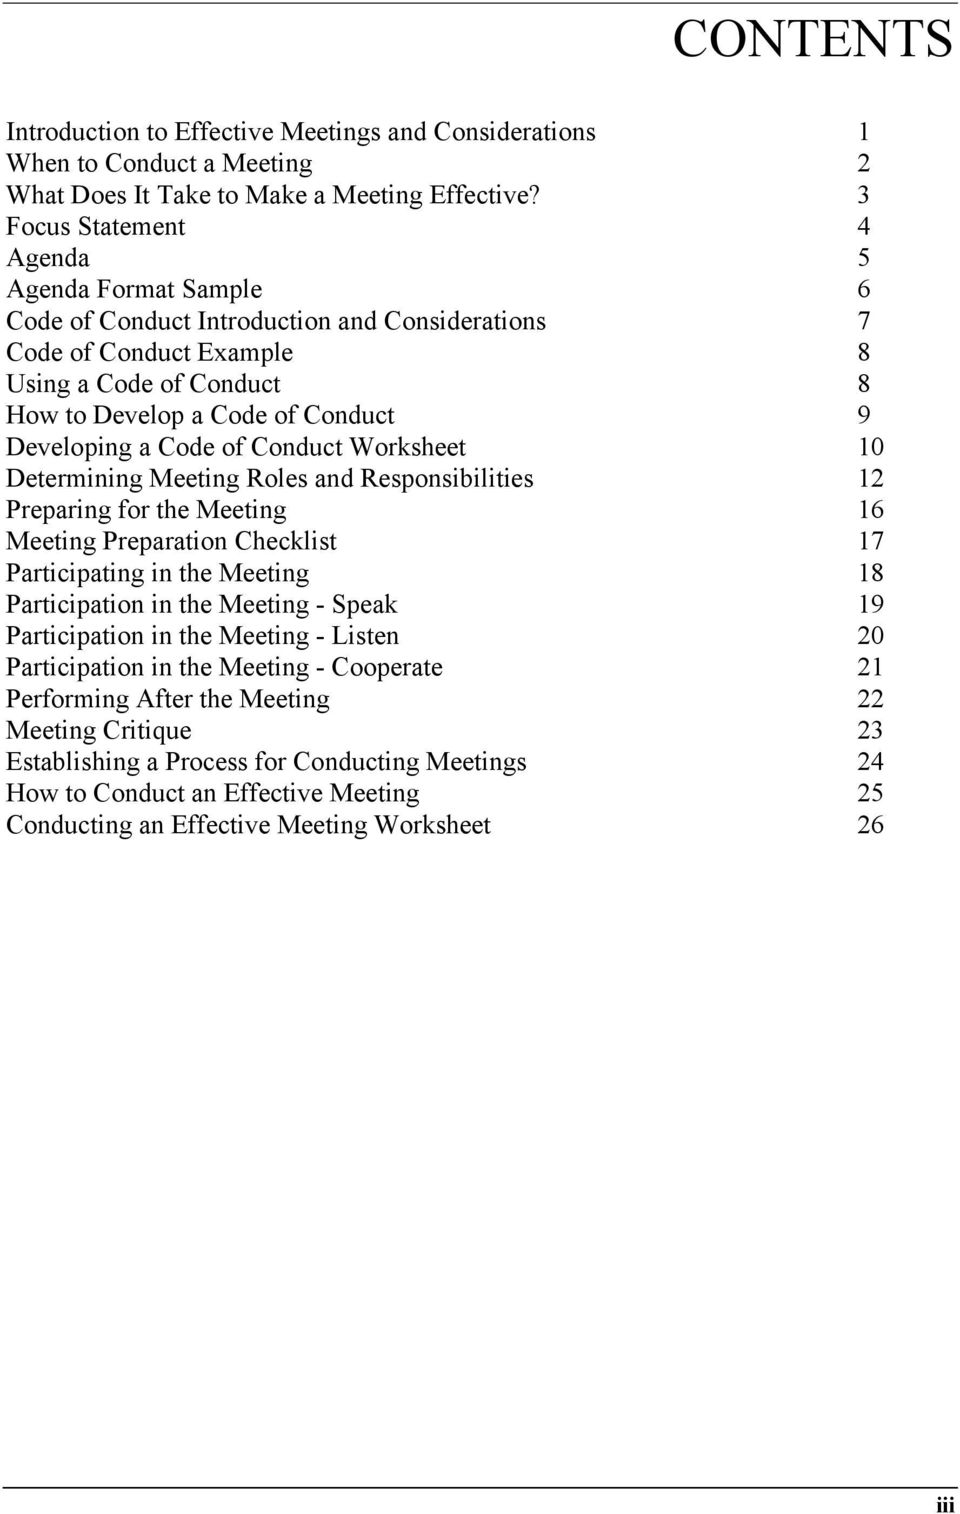 a Code of Conduct Worksheet 10 Determining Meeting Roles and Responsibilities 12 Preparing for the Meeting 16 Meeting Preparation Checklist 17 Participating in the Meeting 18 Participation in the